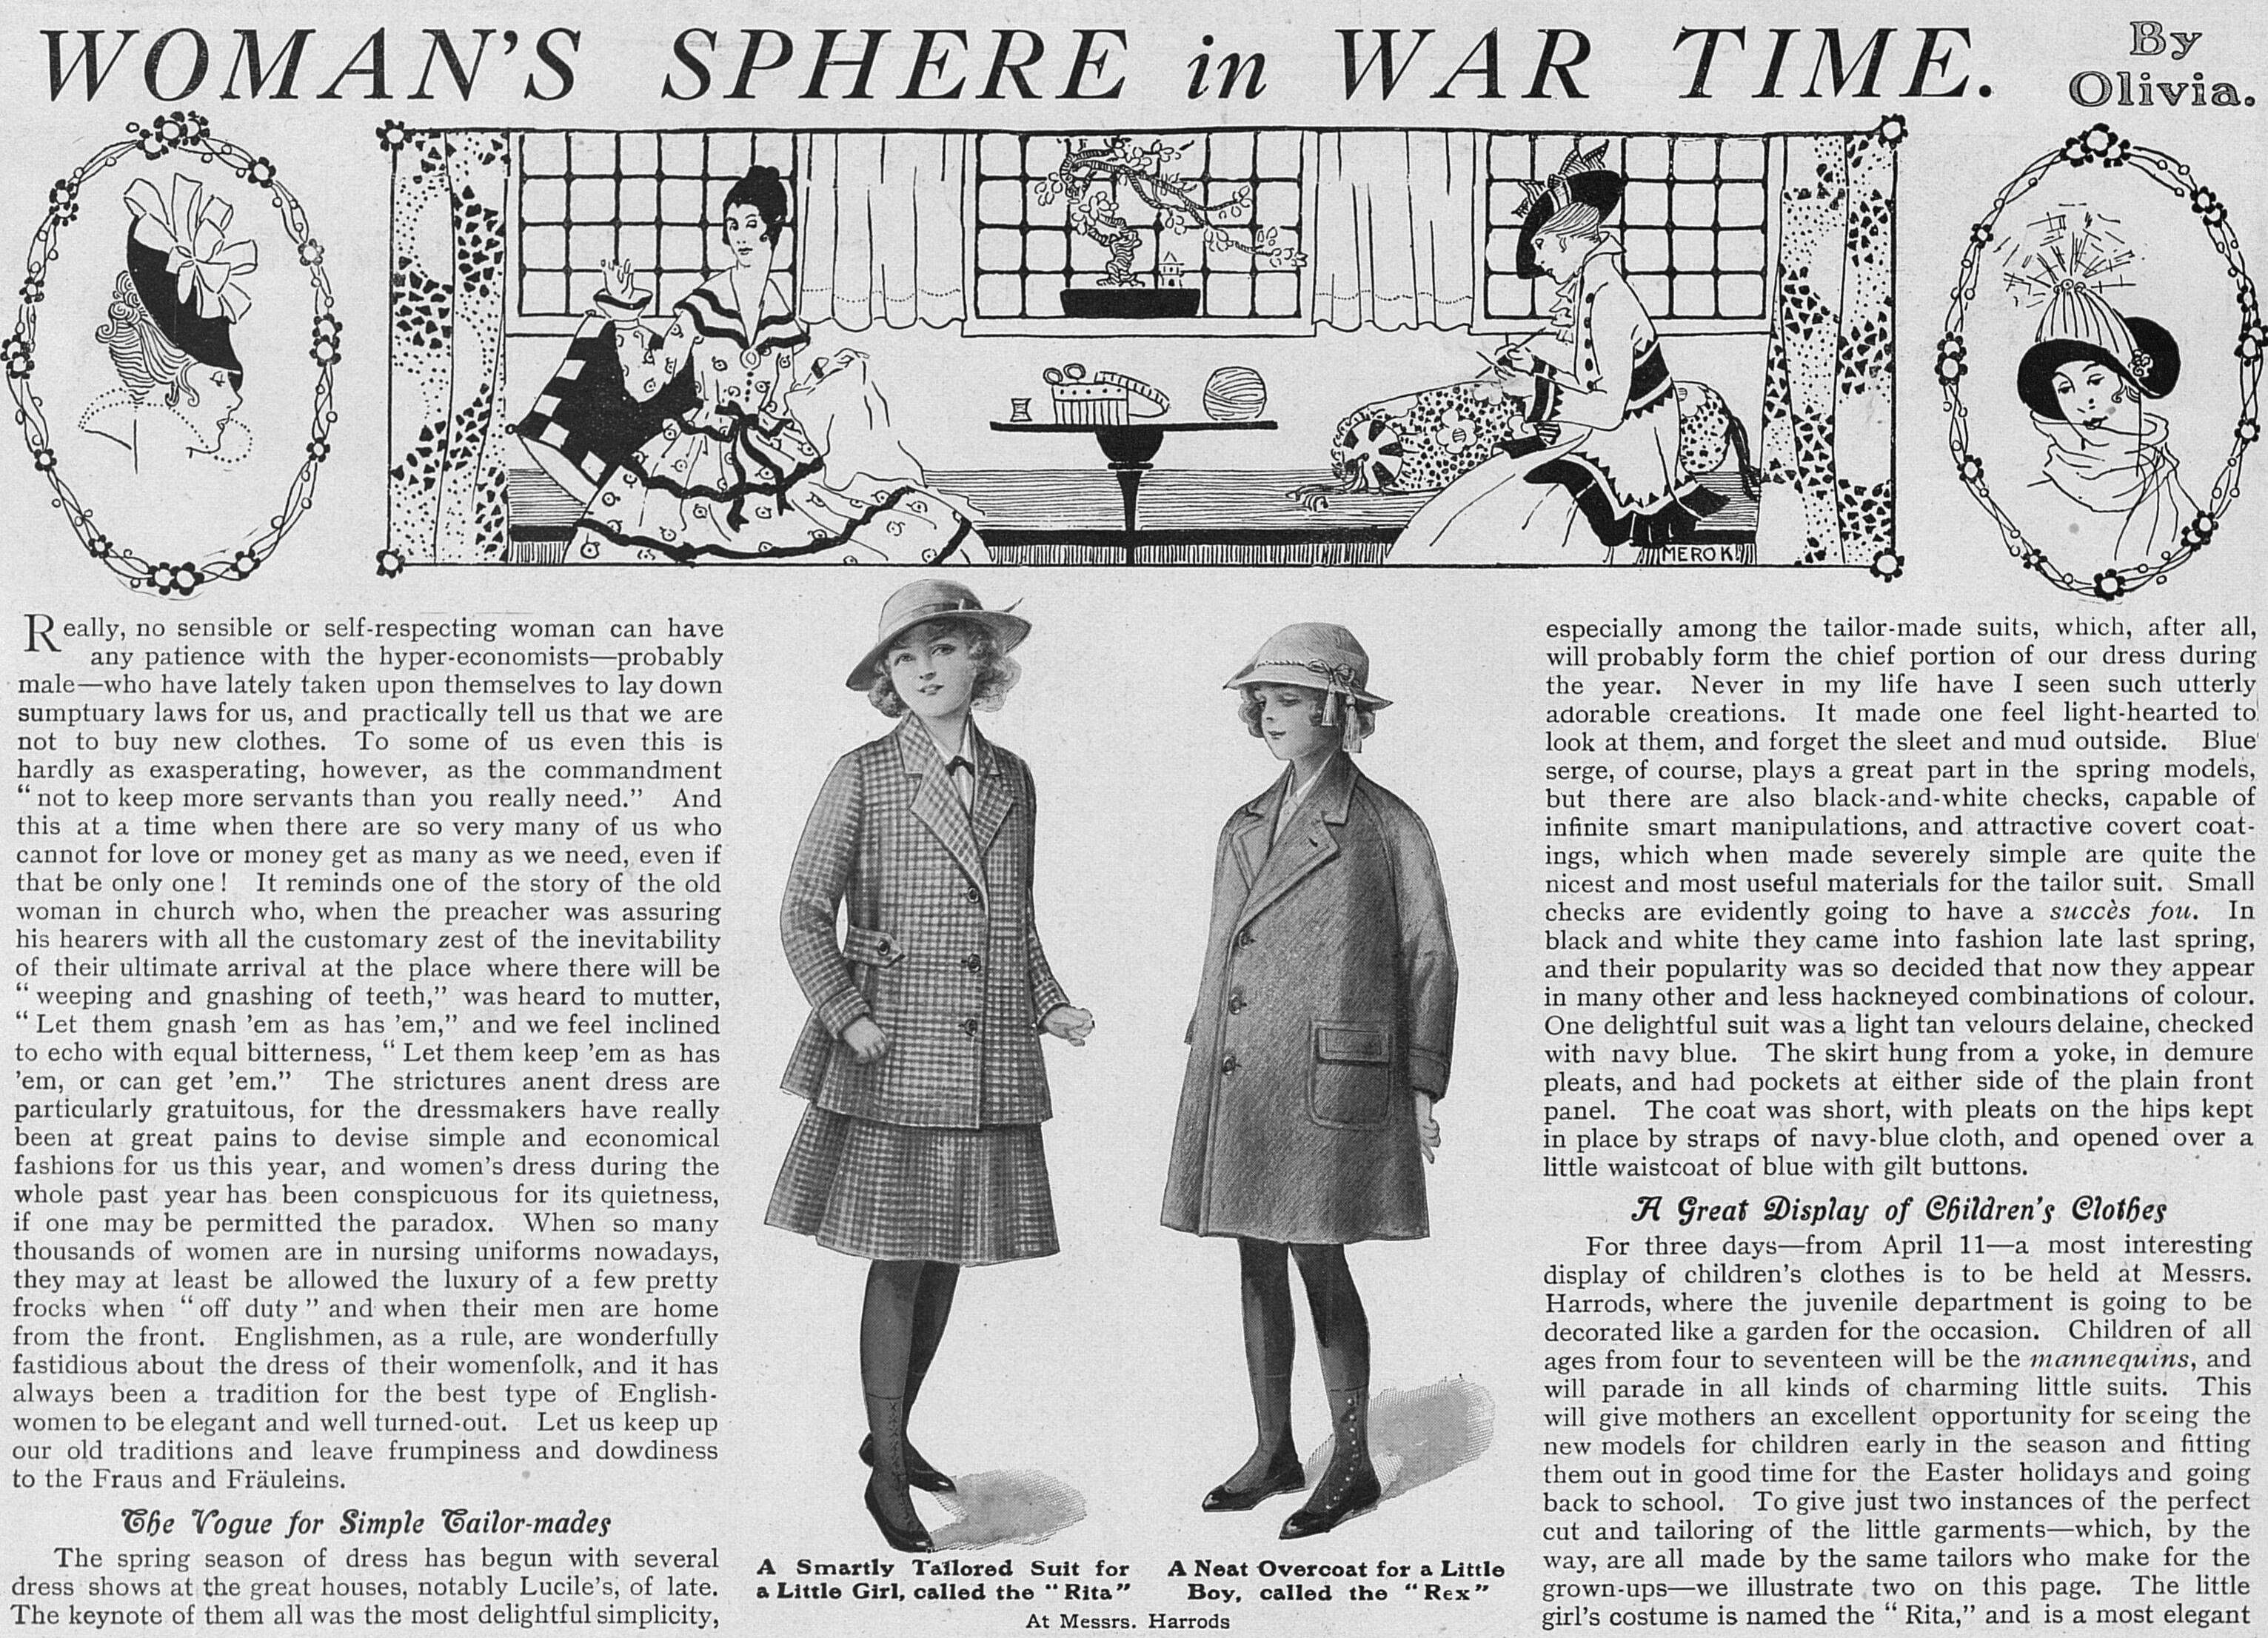 WomansSphereInWarTime_8Apr1916